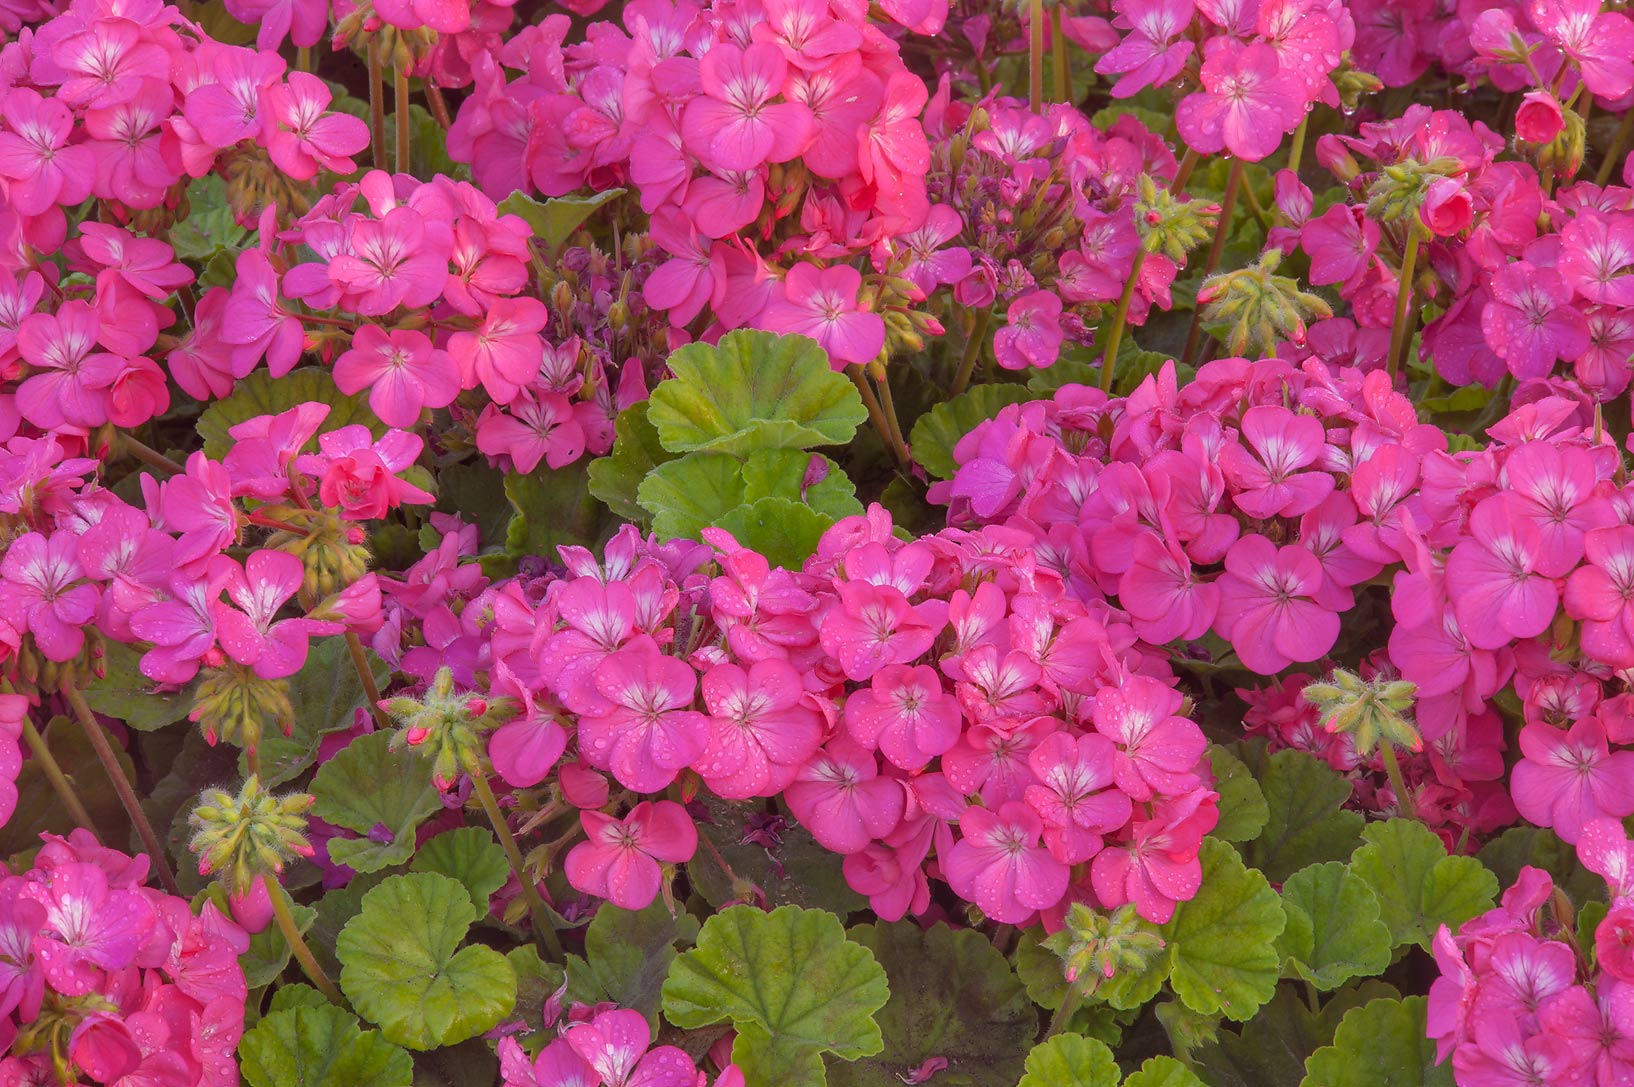 Pink flowers of pelargonium in Aspire Park. Doha, Qatar